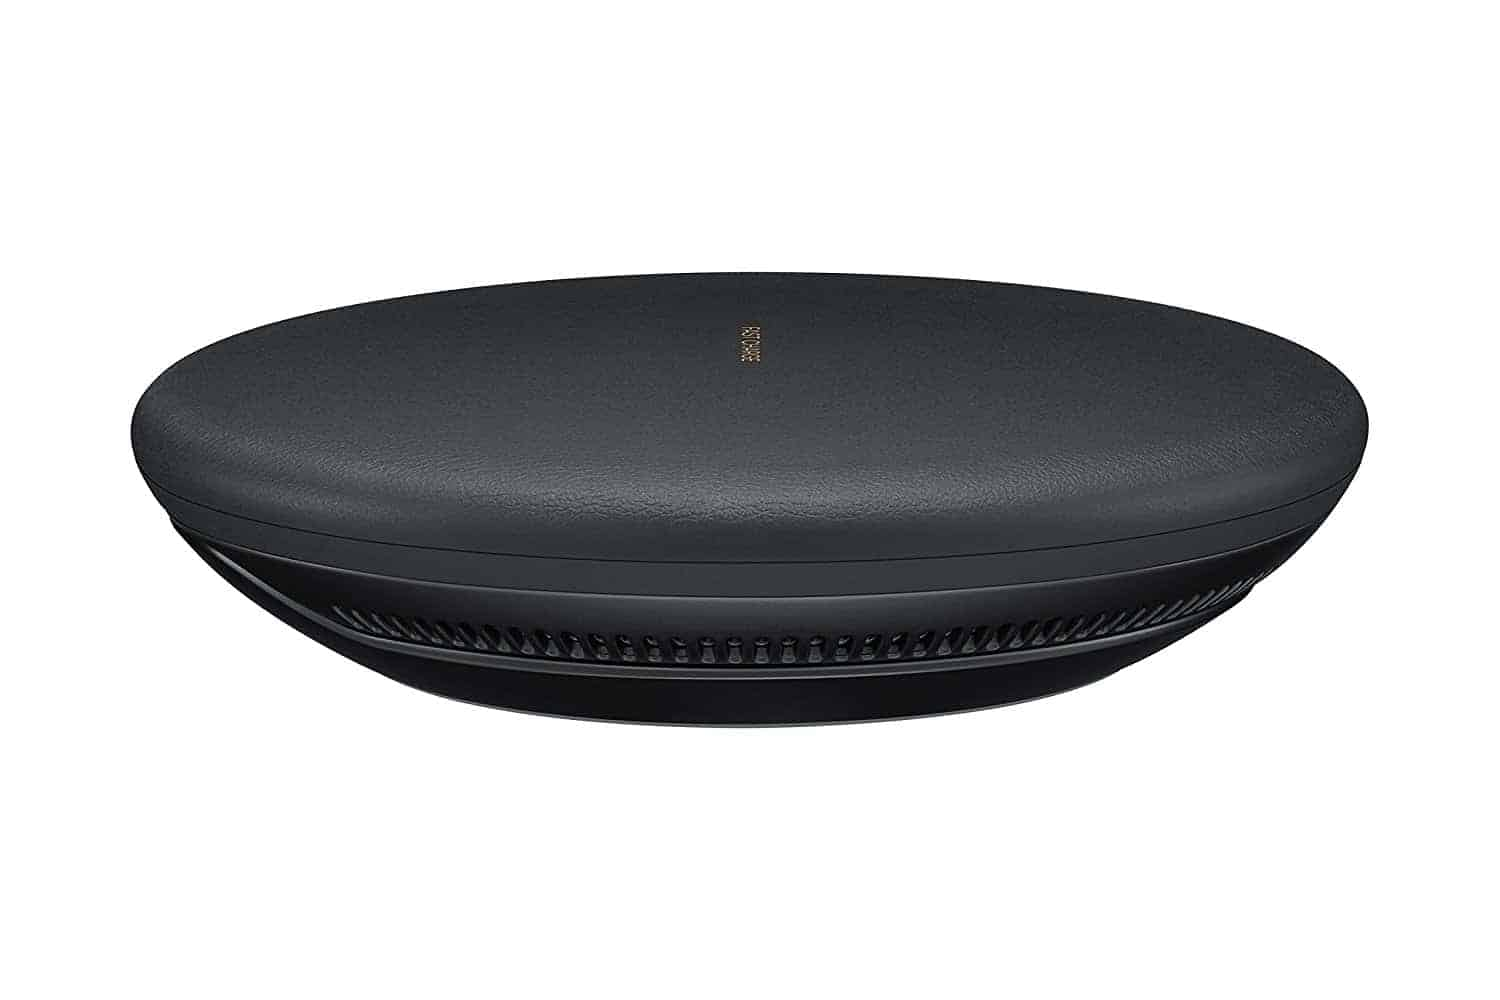 samsung fast wireless charging stand 5